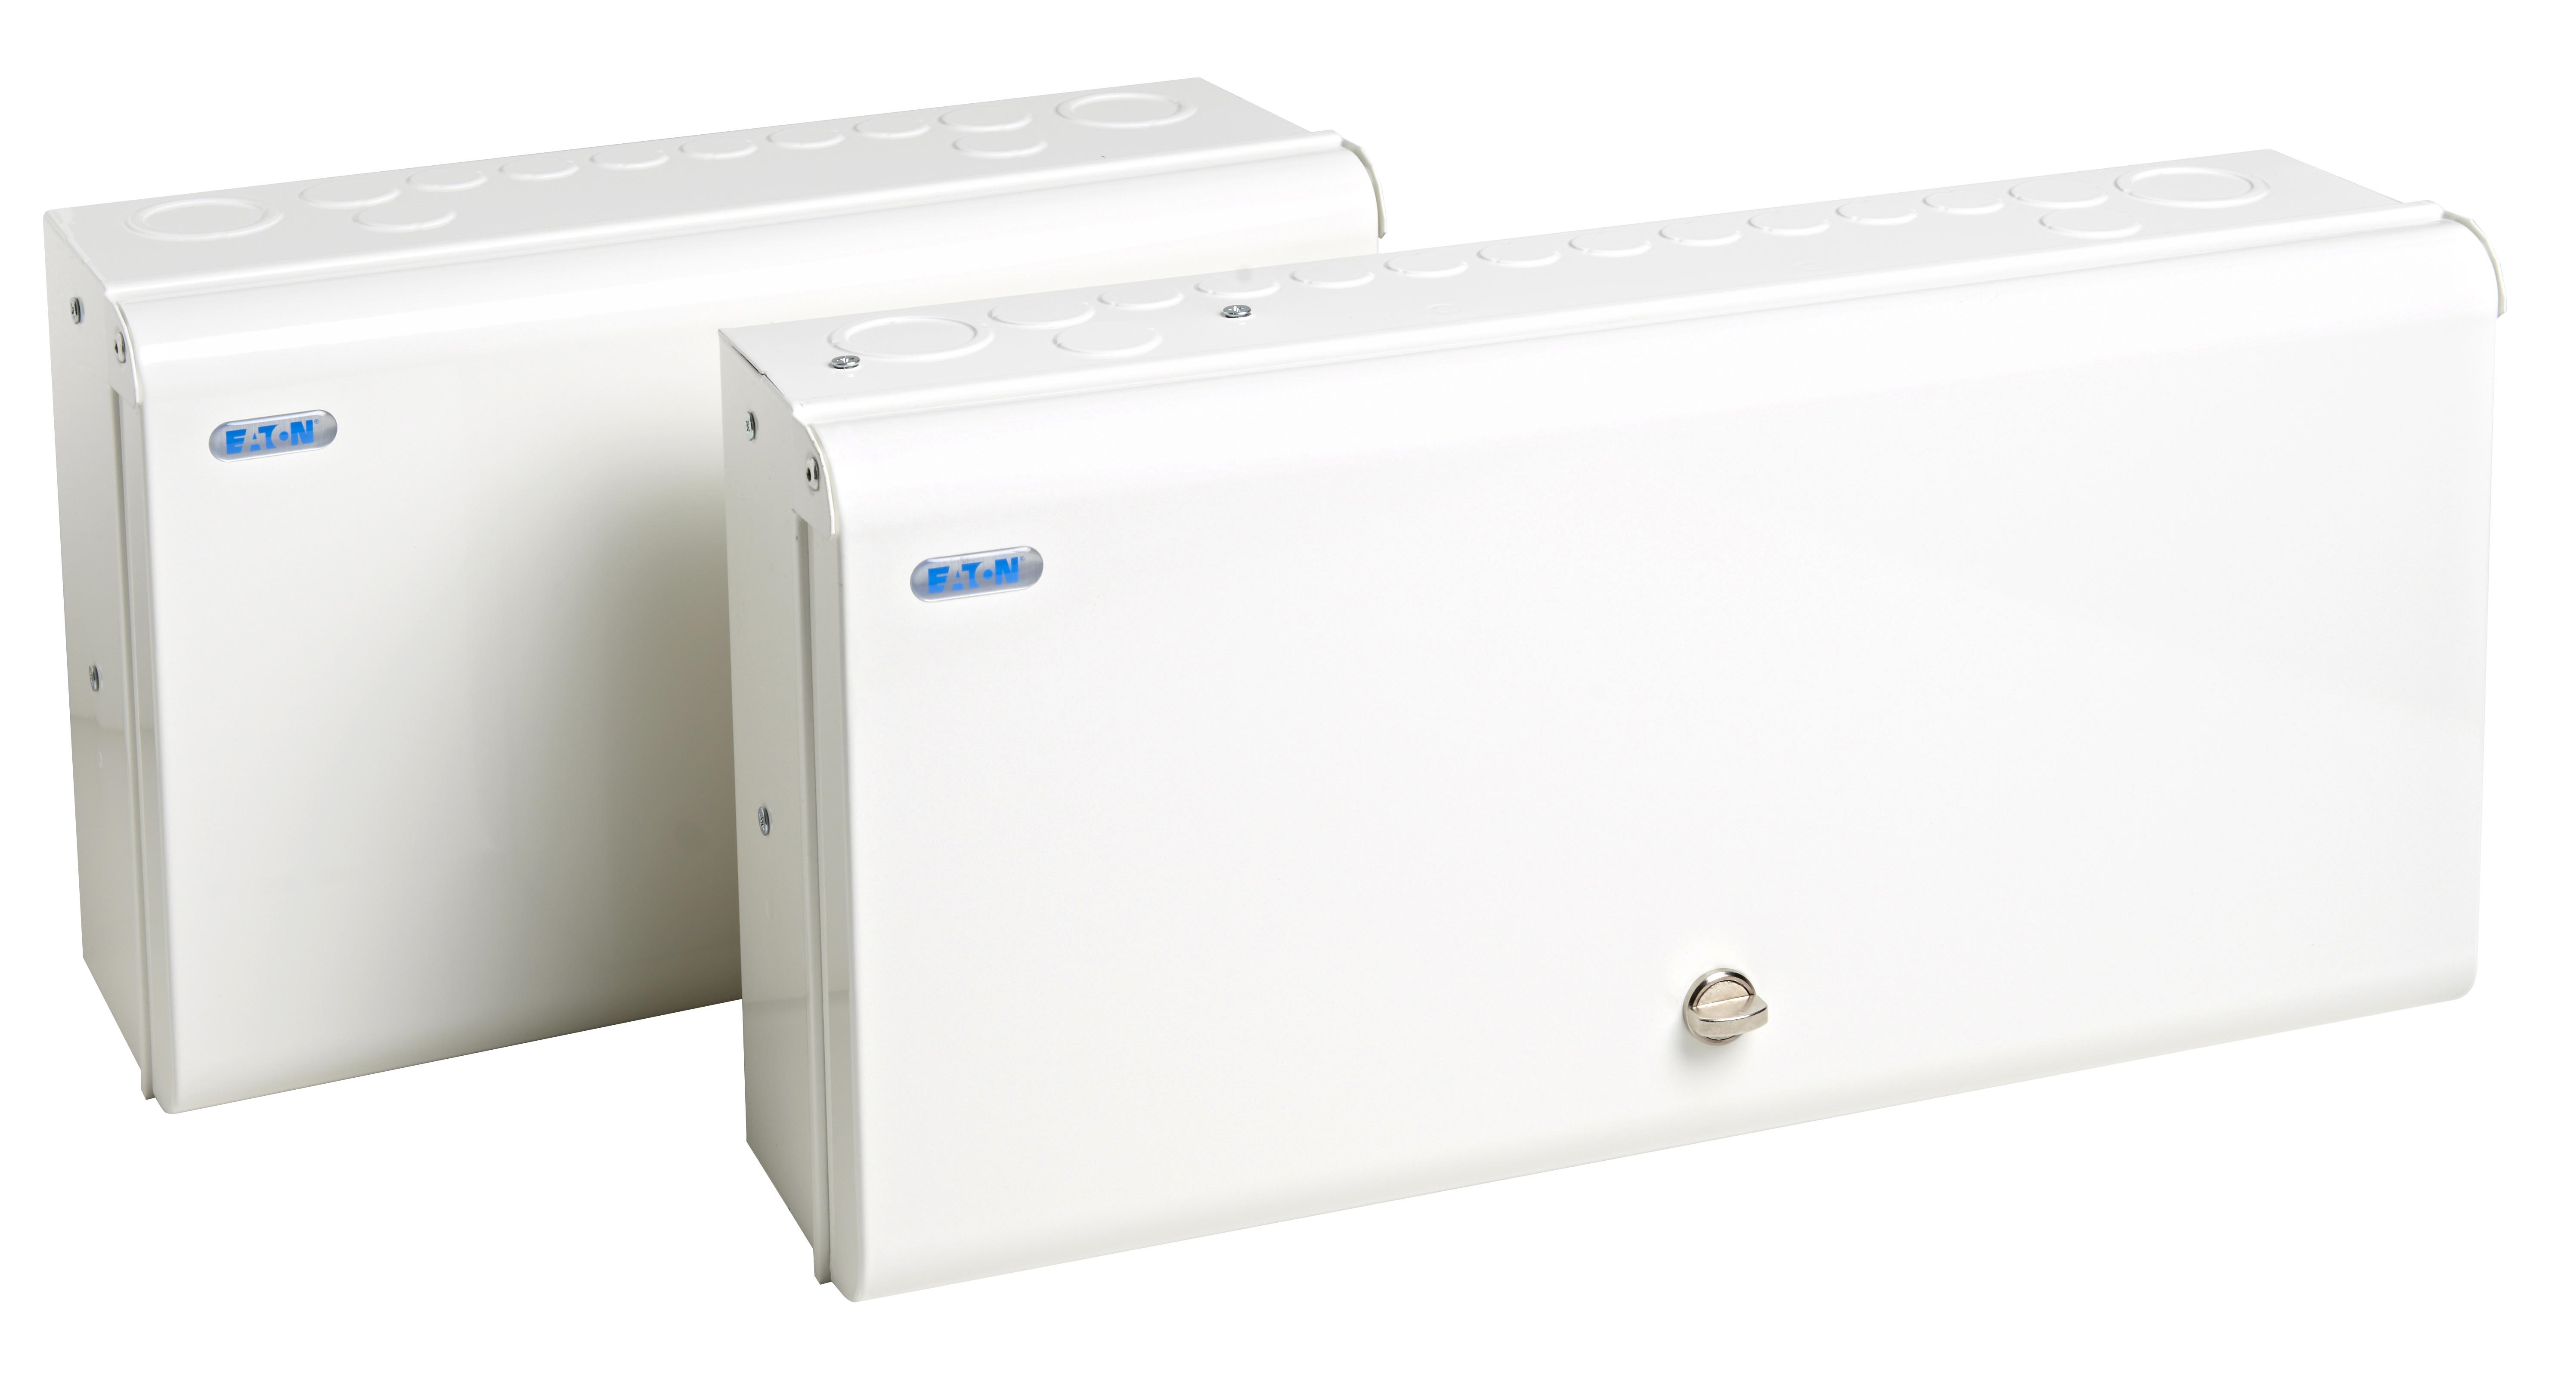 Eatons New Full Metal Consumer Units Comply With 17th Edition Wiring Up Rcd Unit Regulations Amendment 3